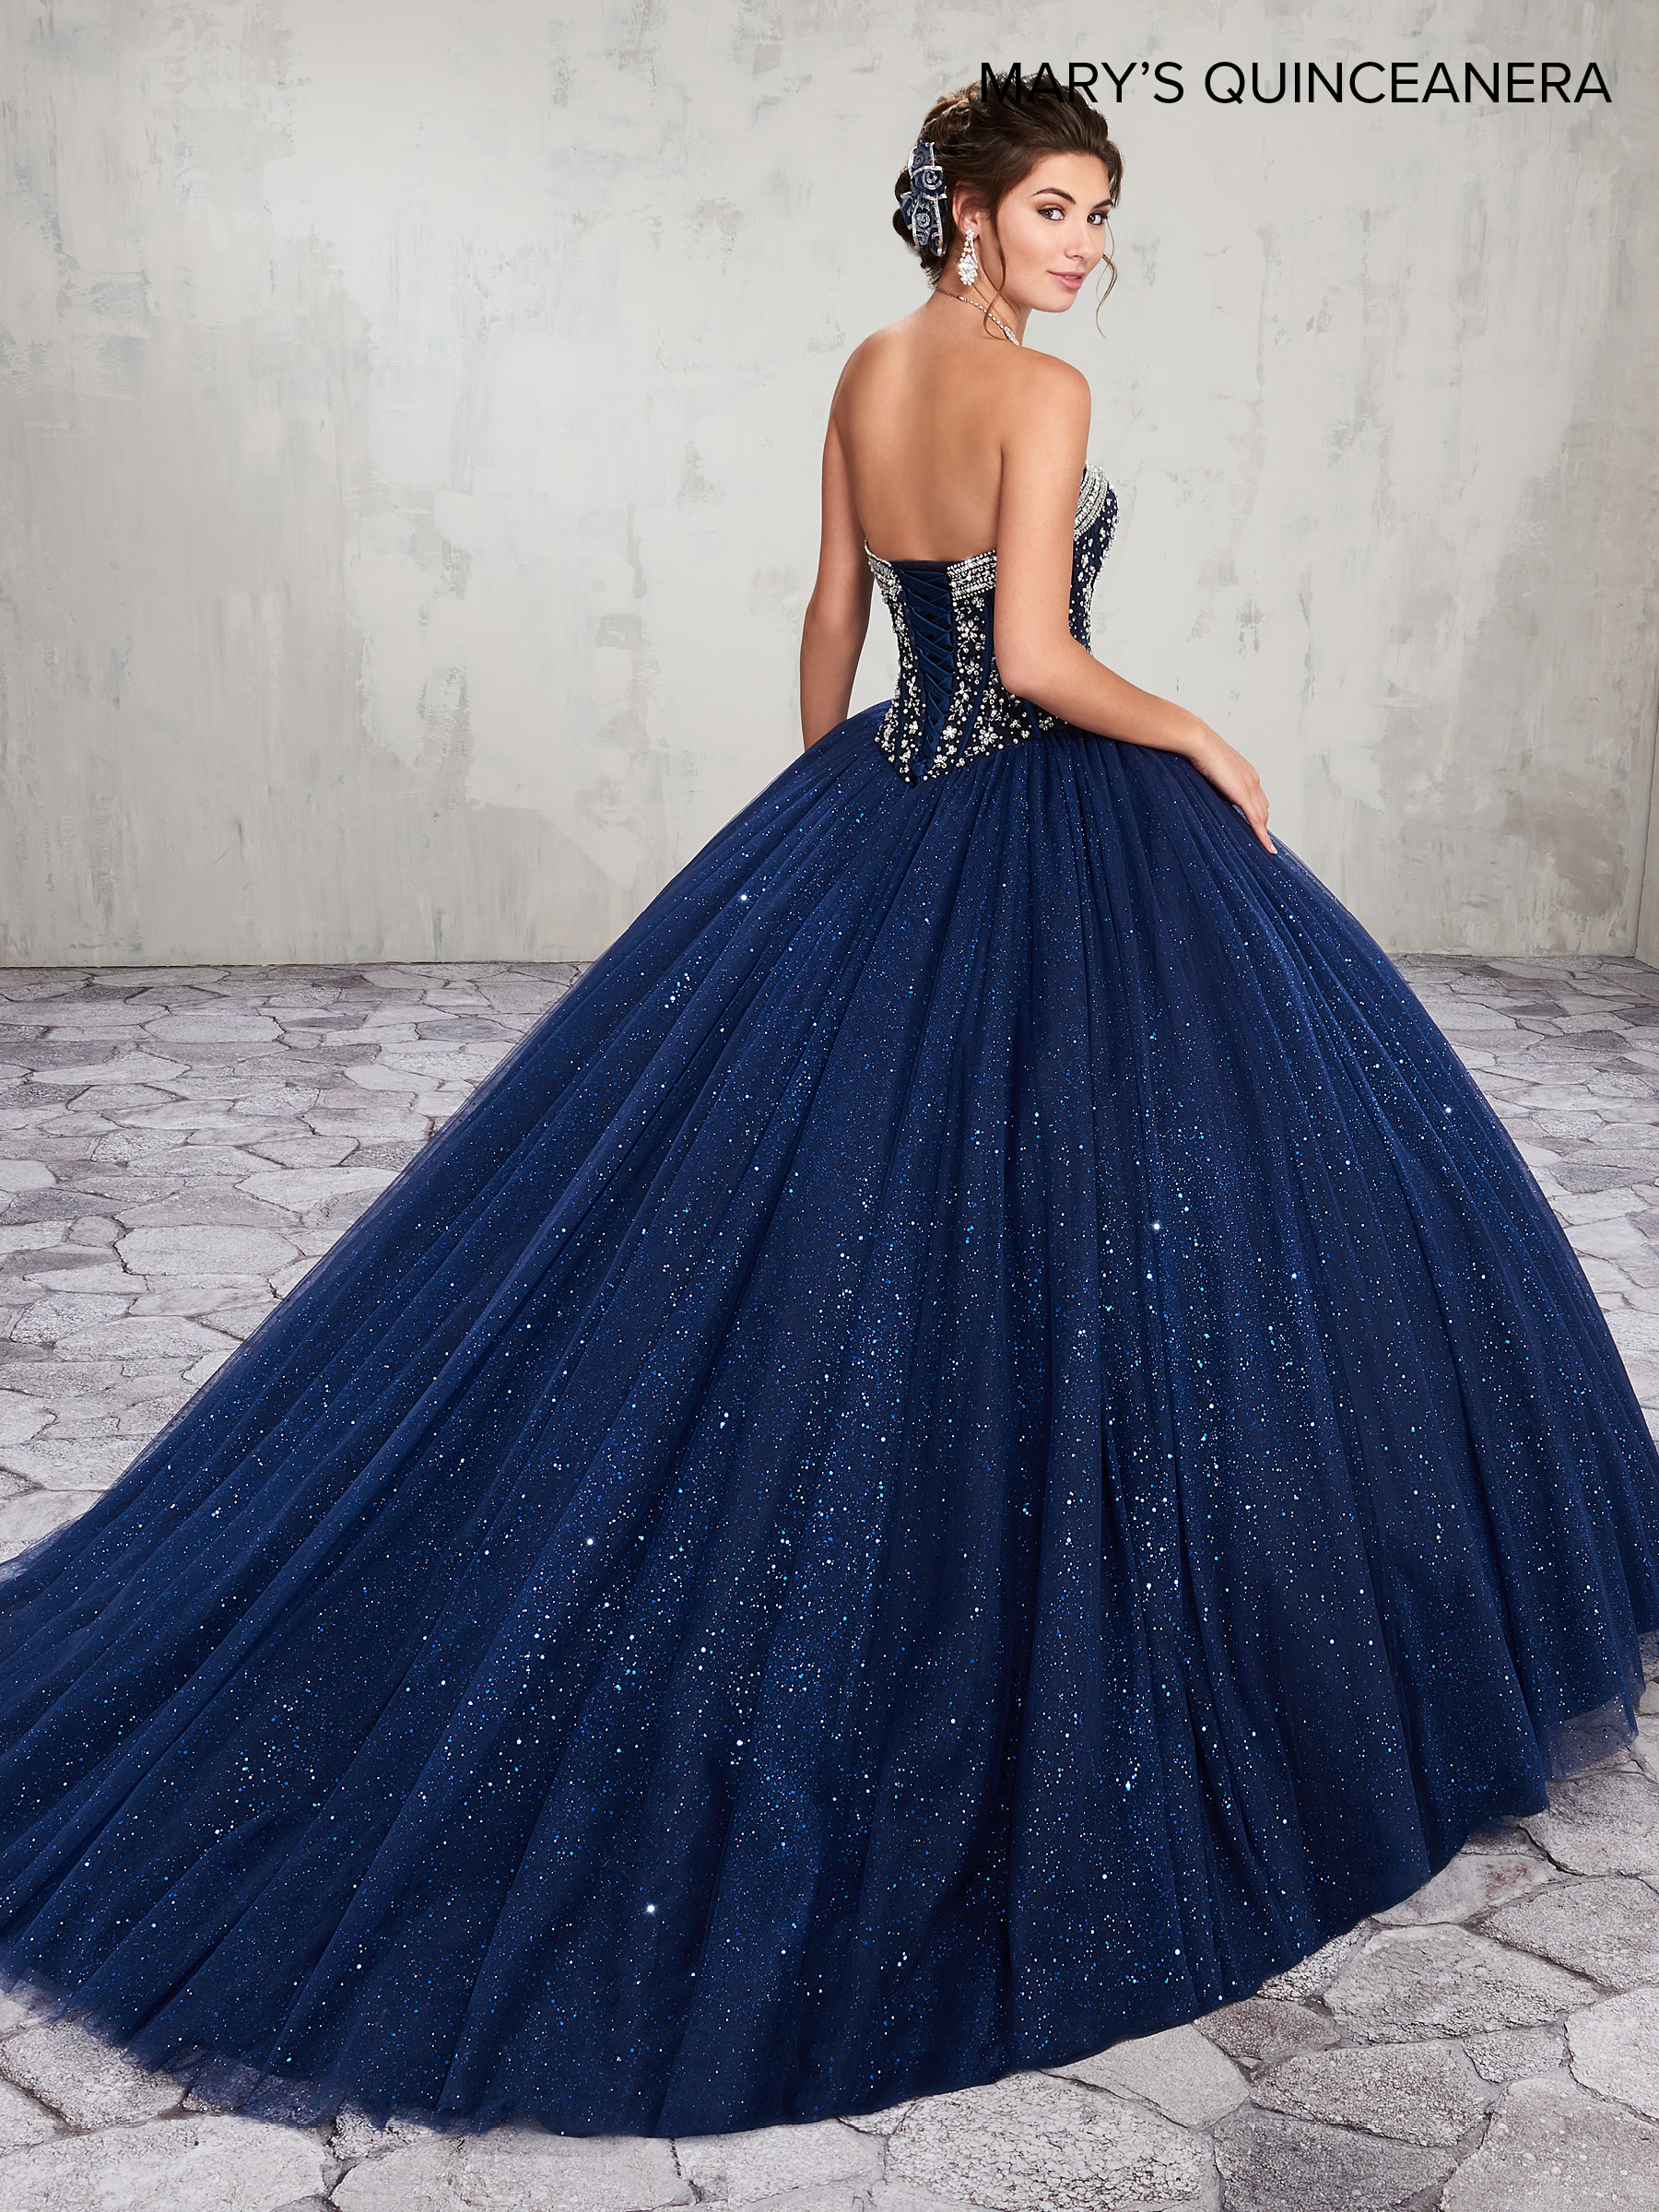 Marys Quinceanera Dresses | Mary's Quinceanera | Style - MQ2010